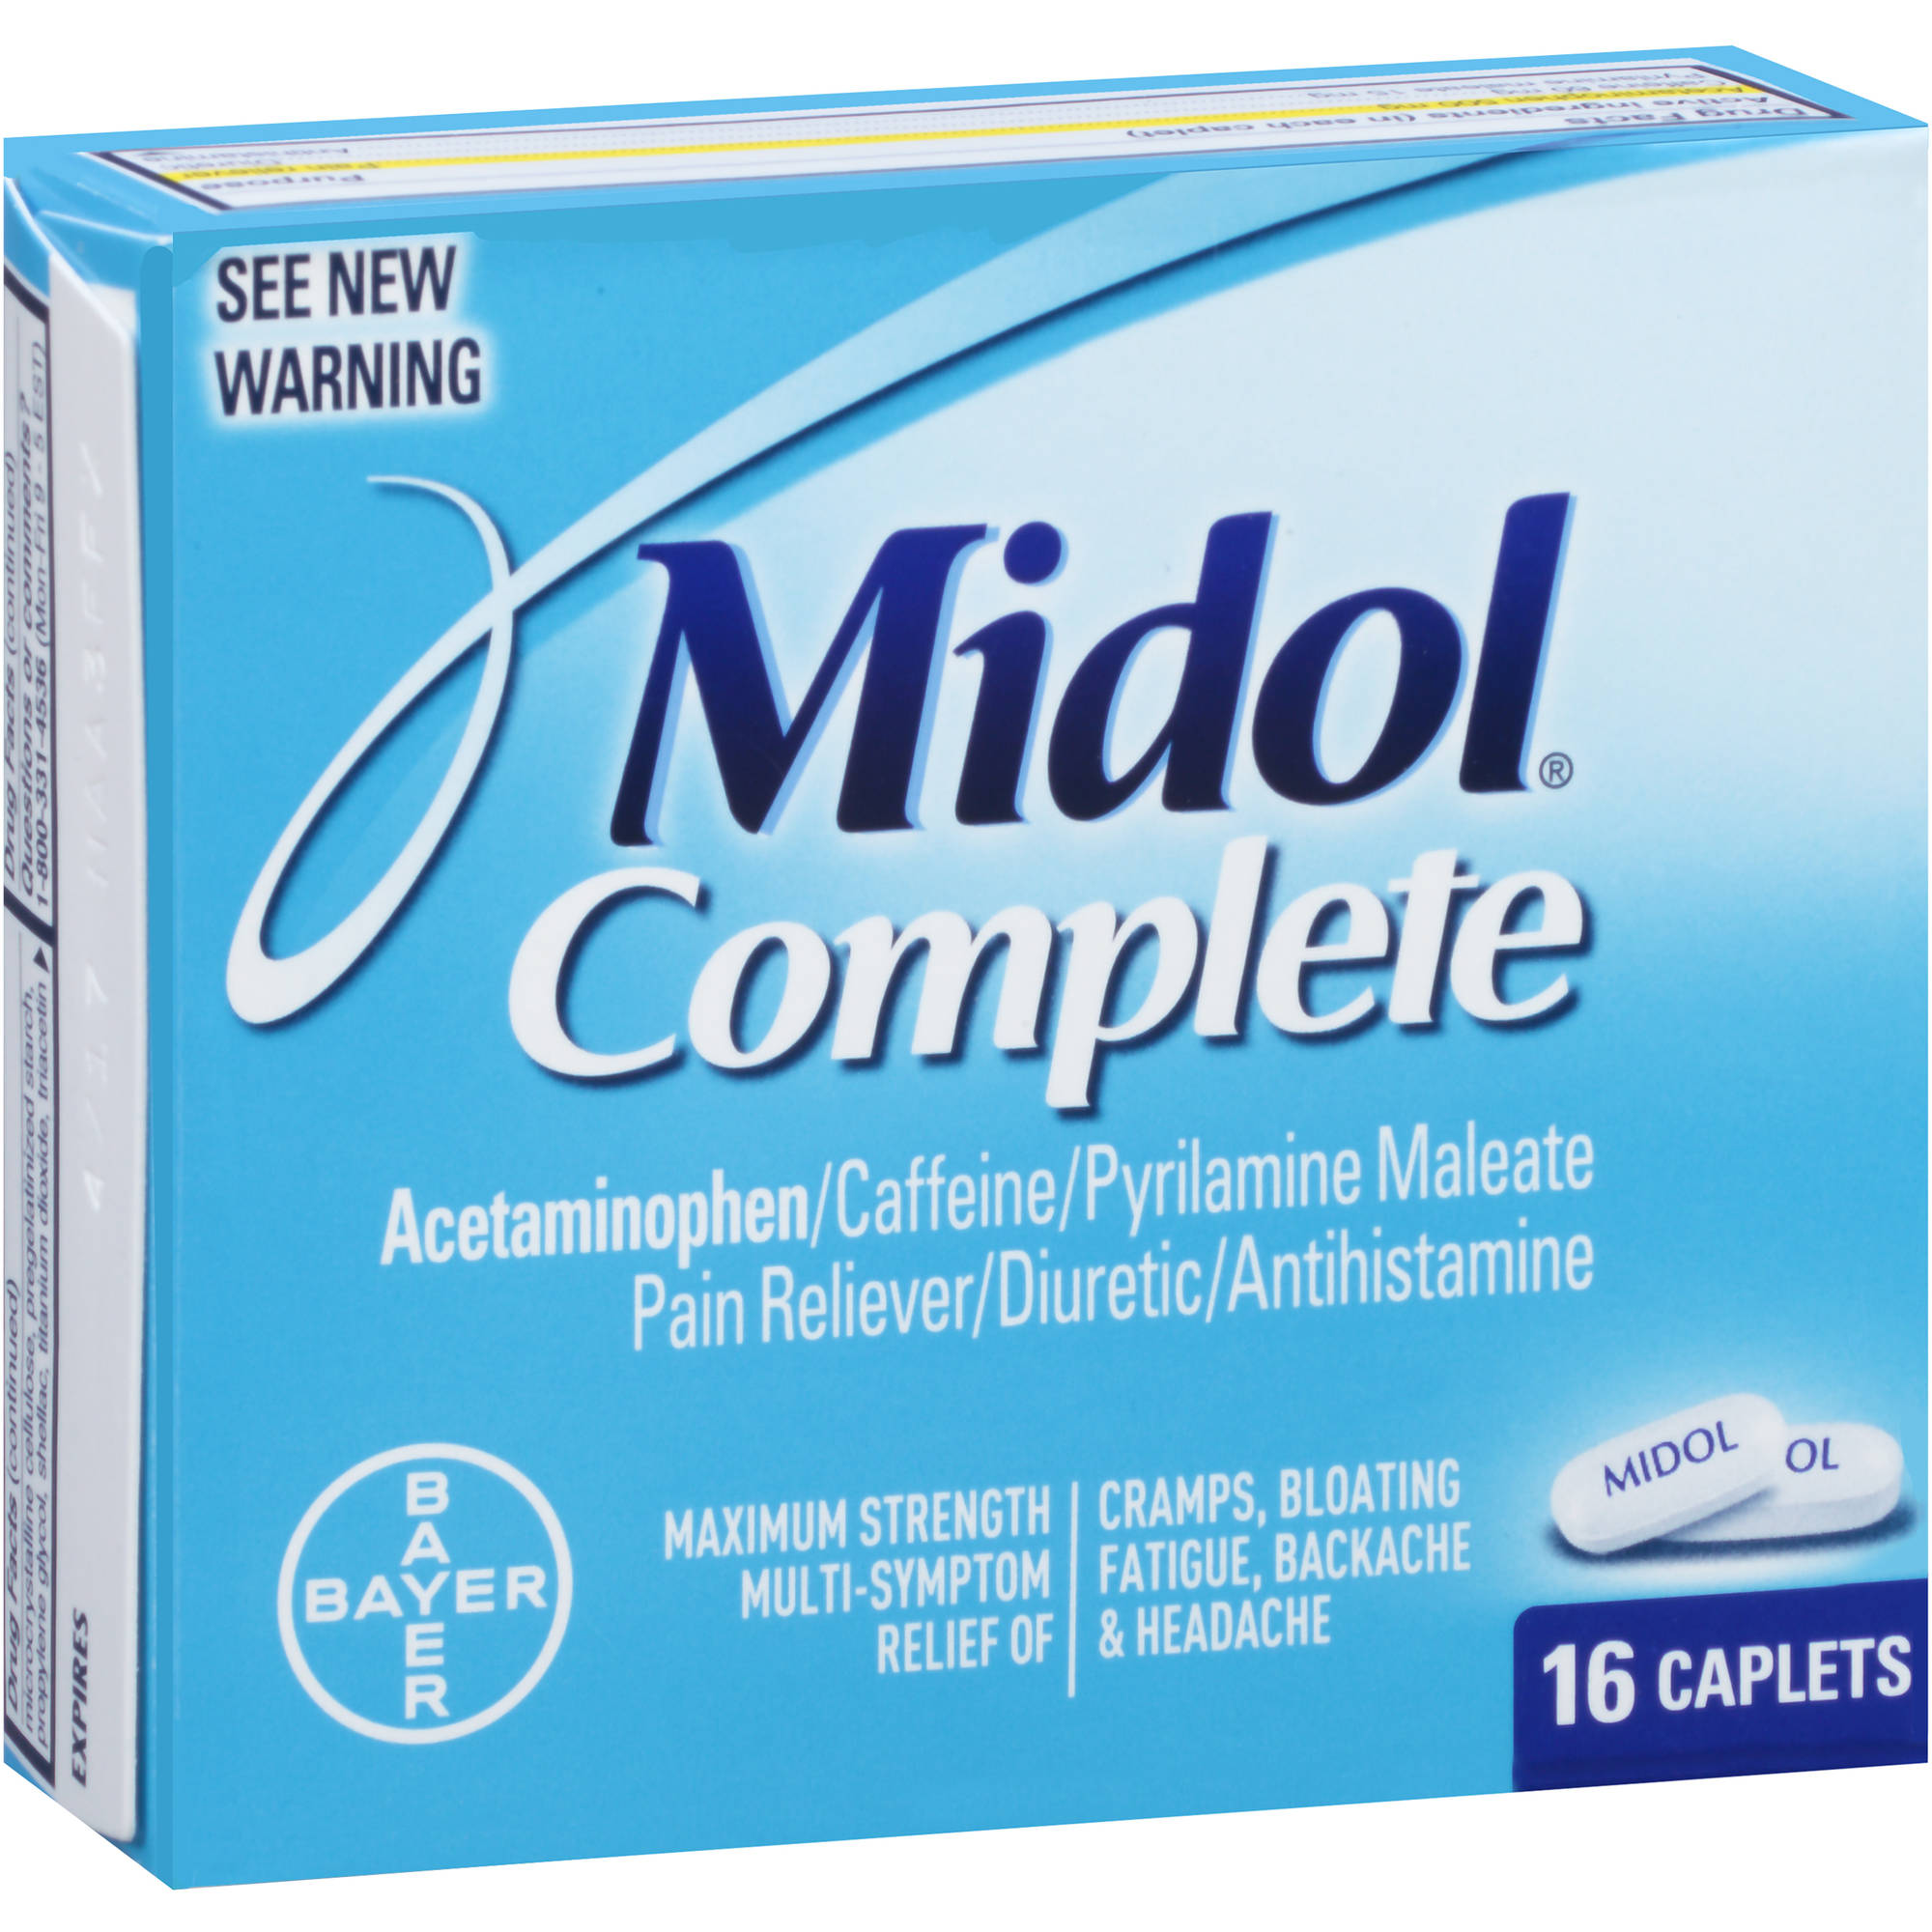 Midol Complete Multi-Symptom Relief, 16 count